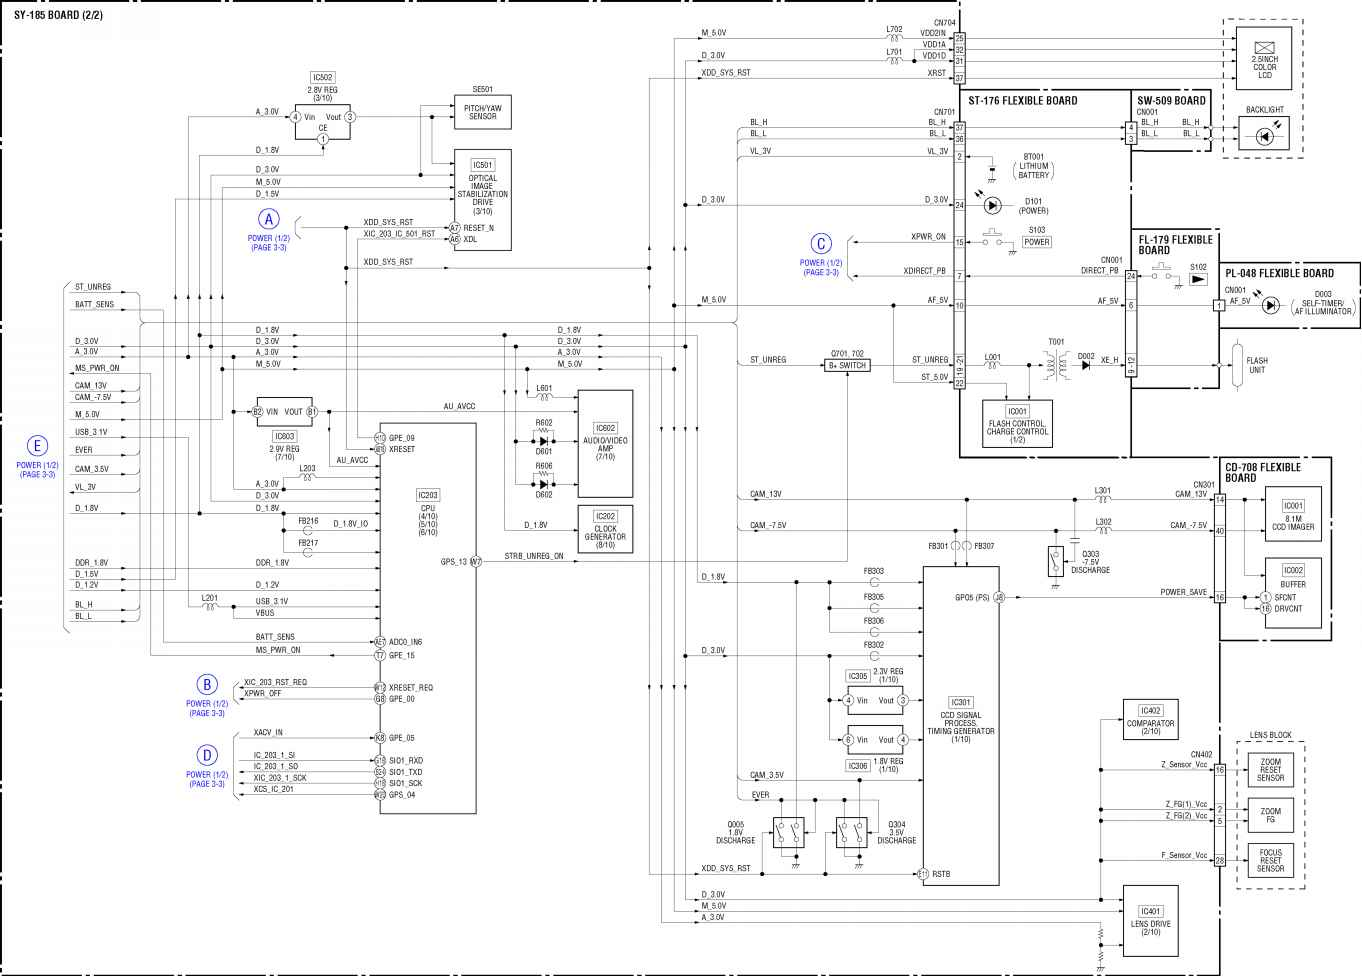 Dsc Gs Boost Wiring Diagram Trusted Diagrams Alarm Box 28 Images Me4331 Review Apr 29 2008 Control Board System